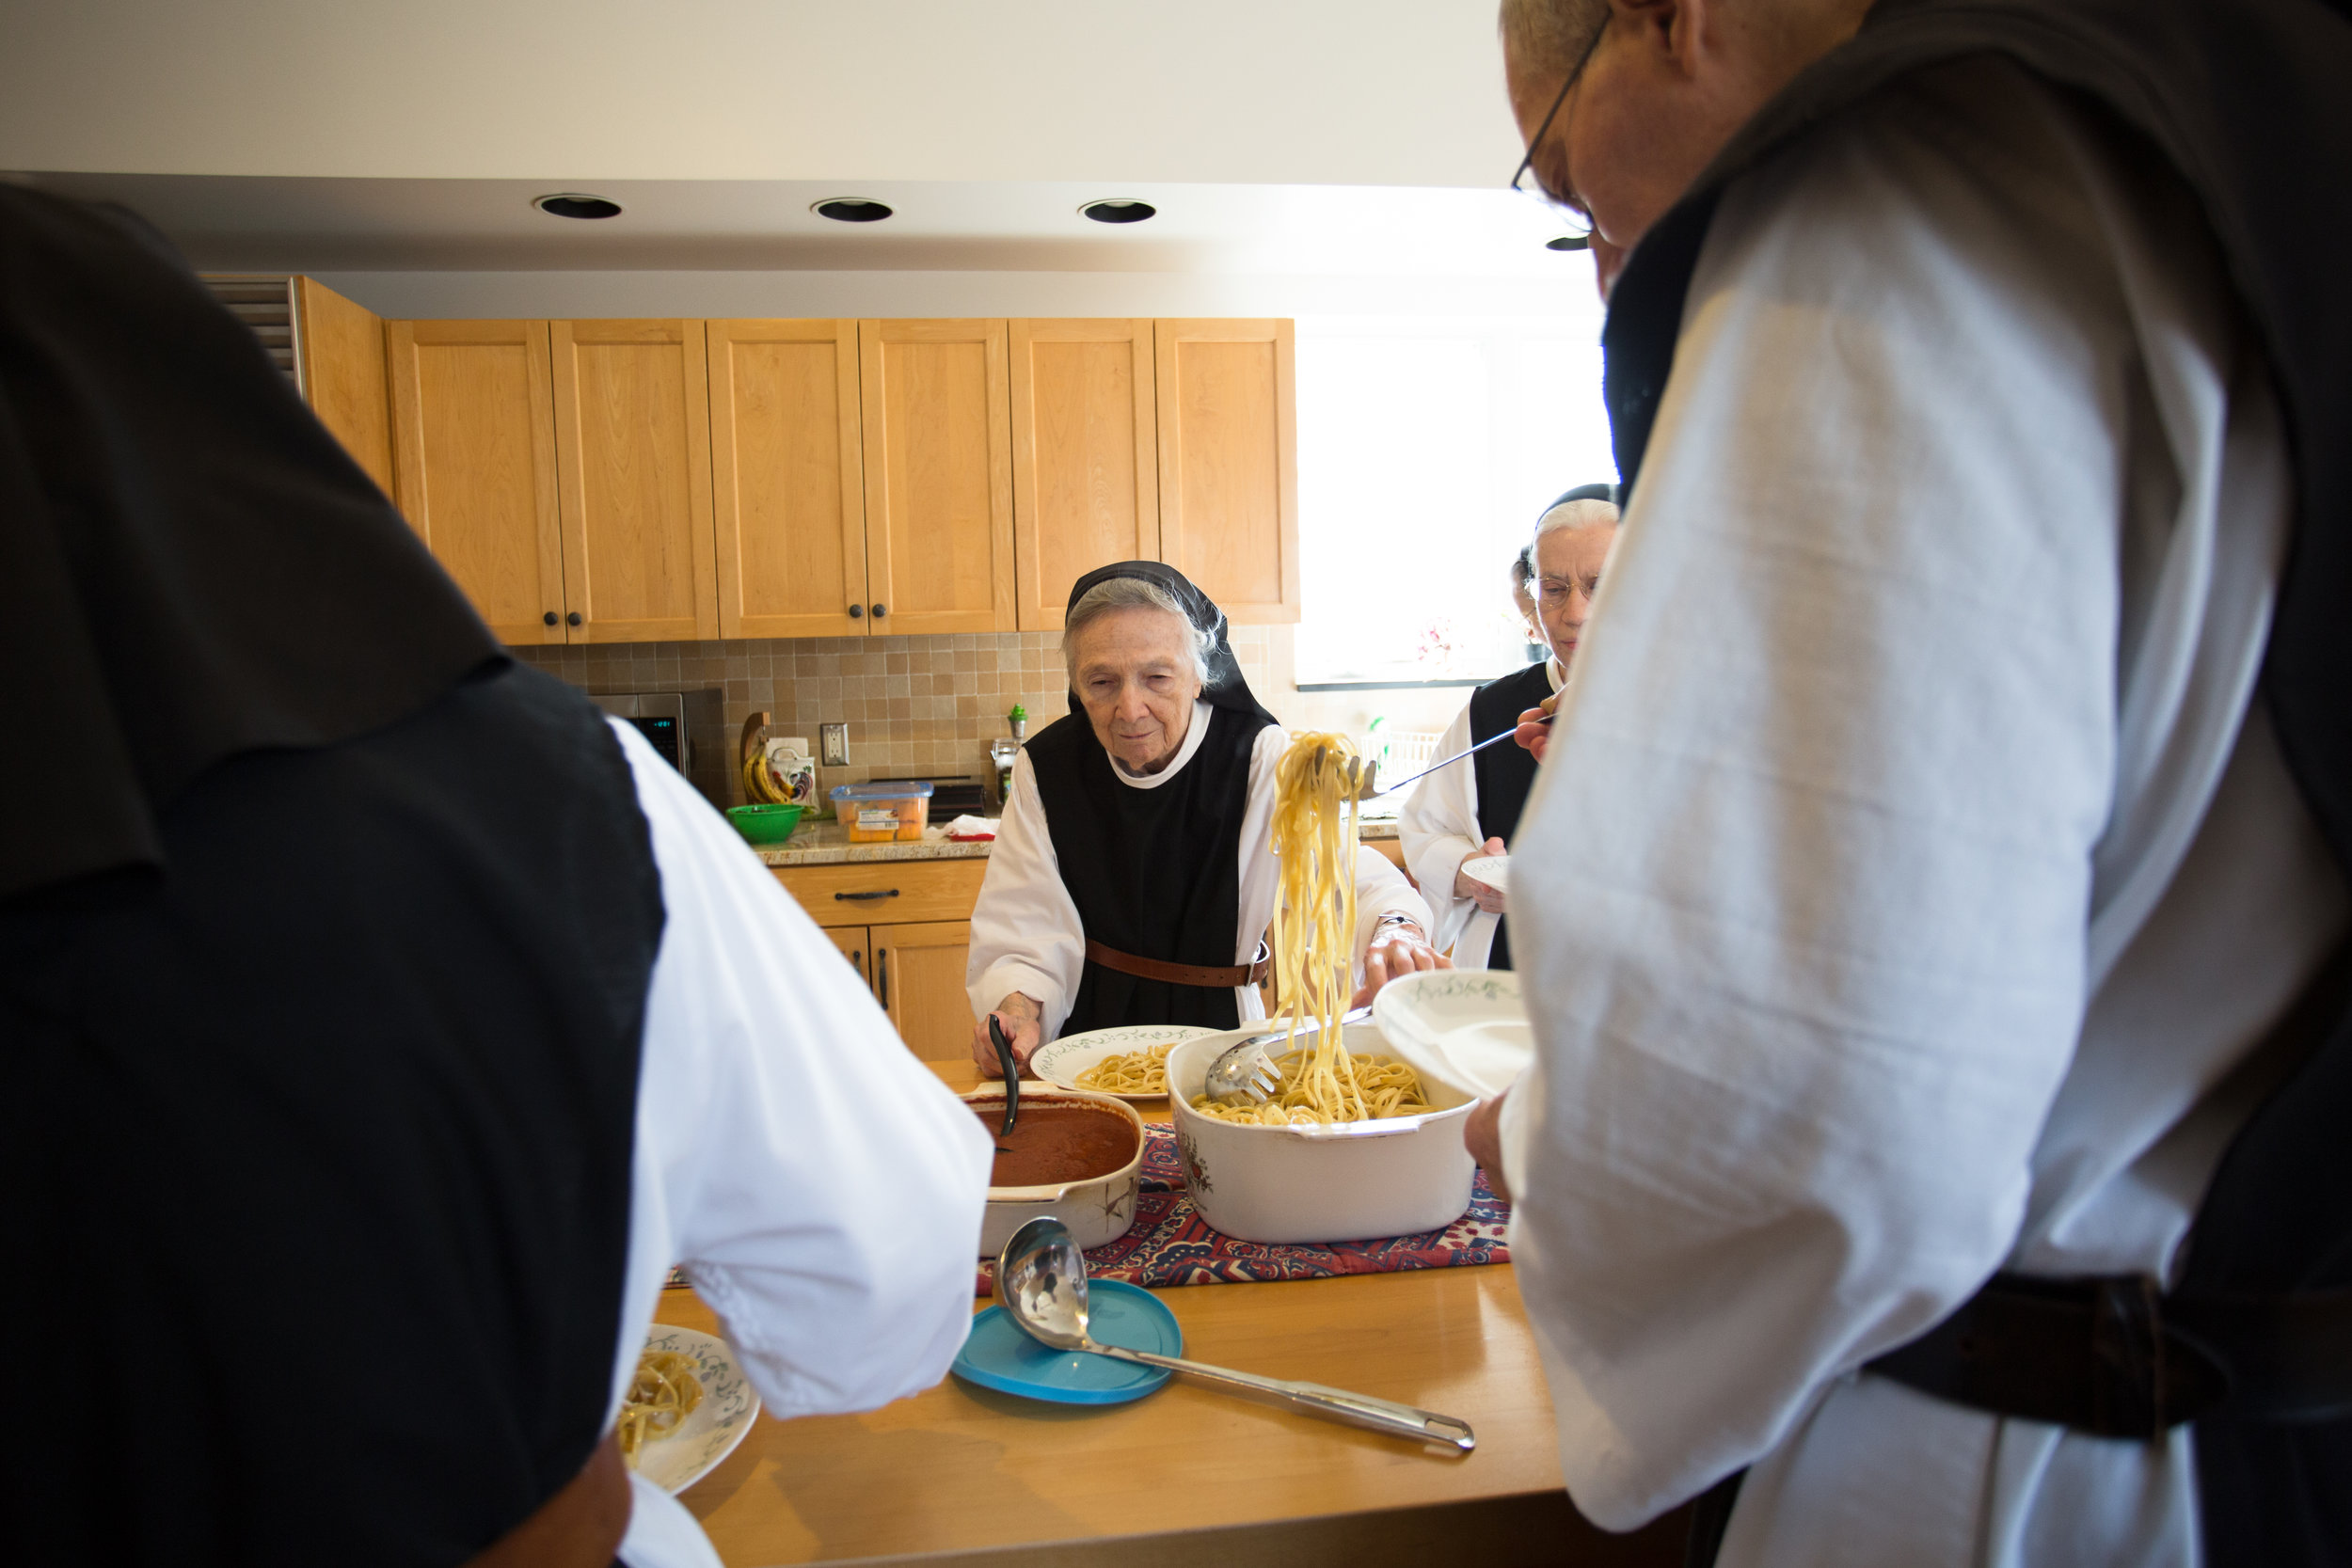 Sister Claire dishes out spaghetti sauce before supper. The sisters eat family style because it is another way to emphasize community and sharing of blessings. Their Gouda cheese is also served on the table.